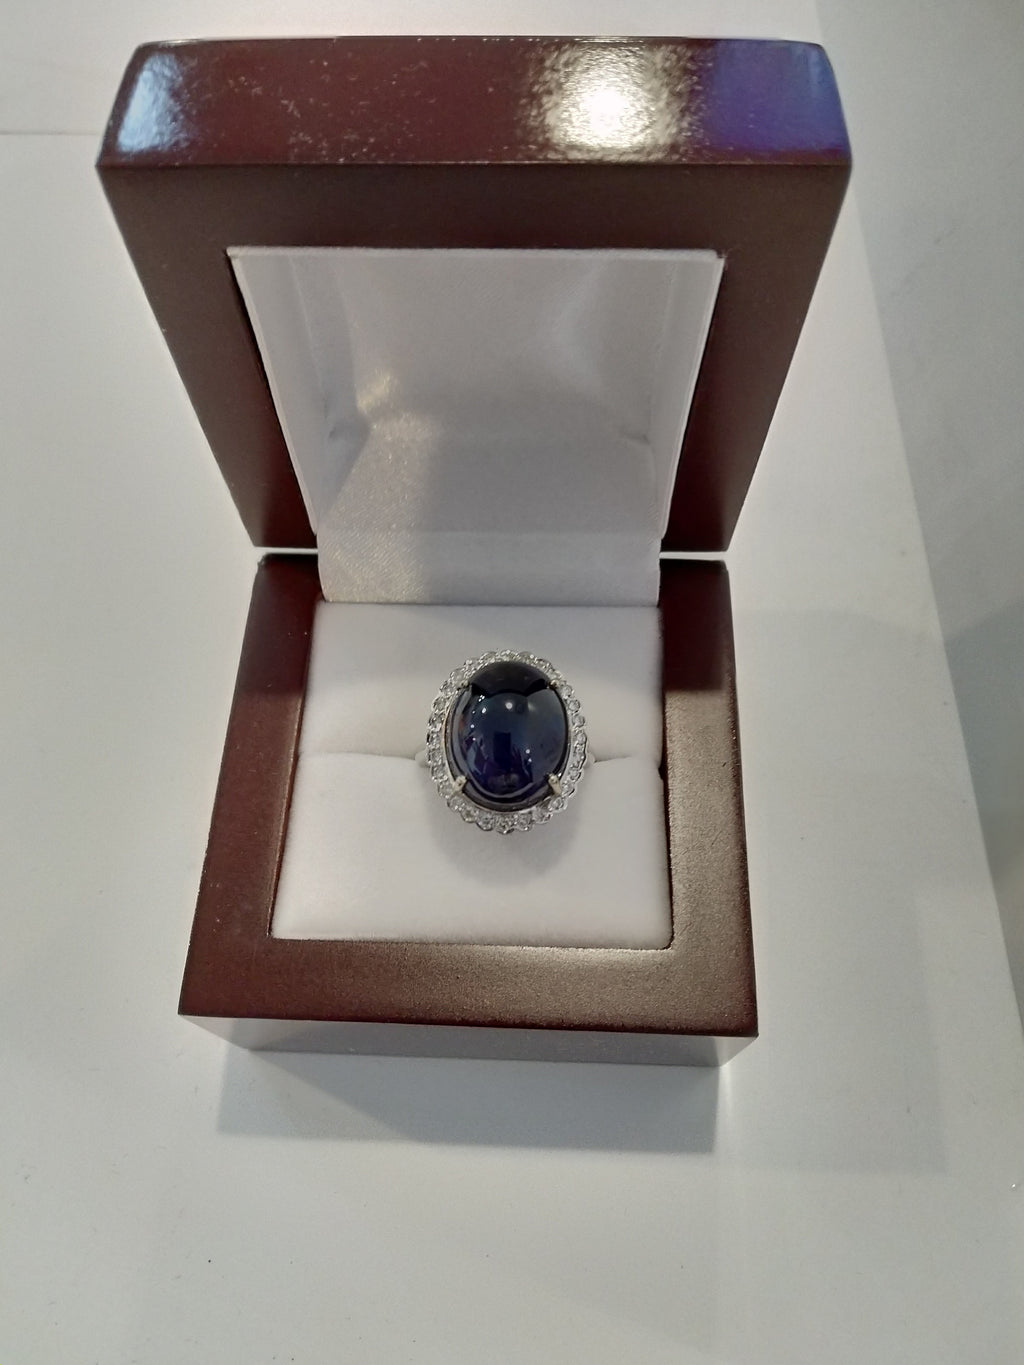 12.35g 18K white gold and 16.37mm x10mm oval deep blue quartz surrounded by 0.42cttw diamonds ladies ring